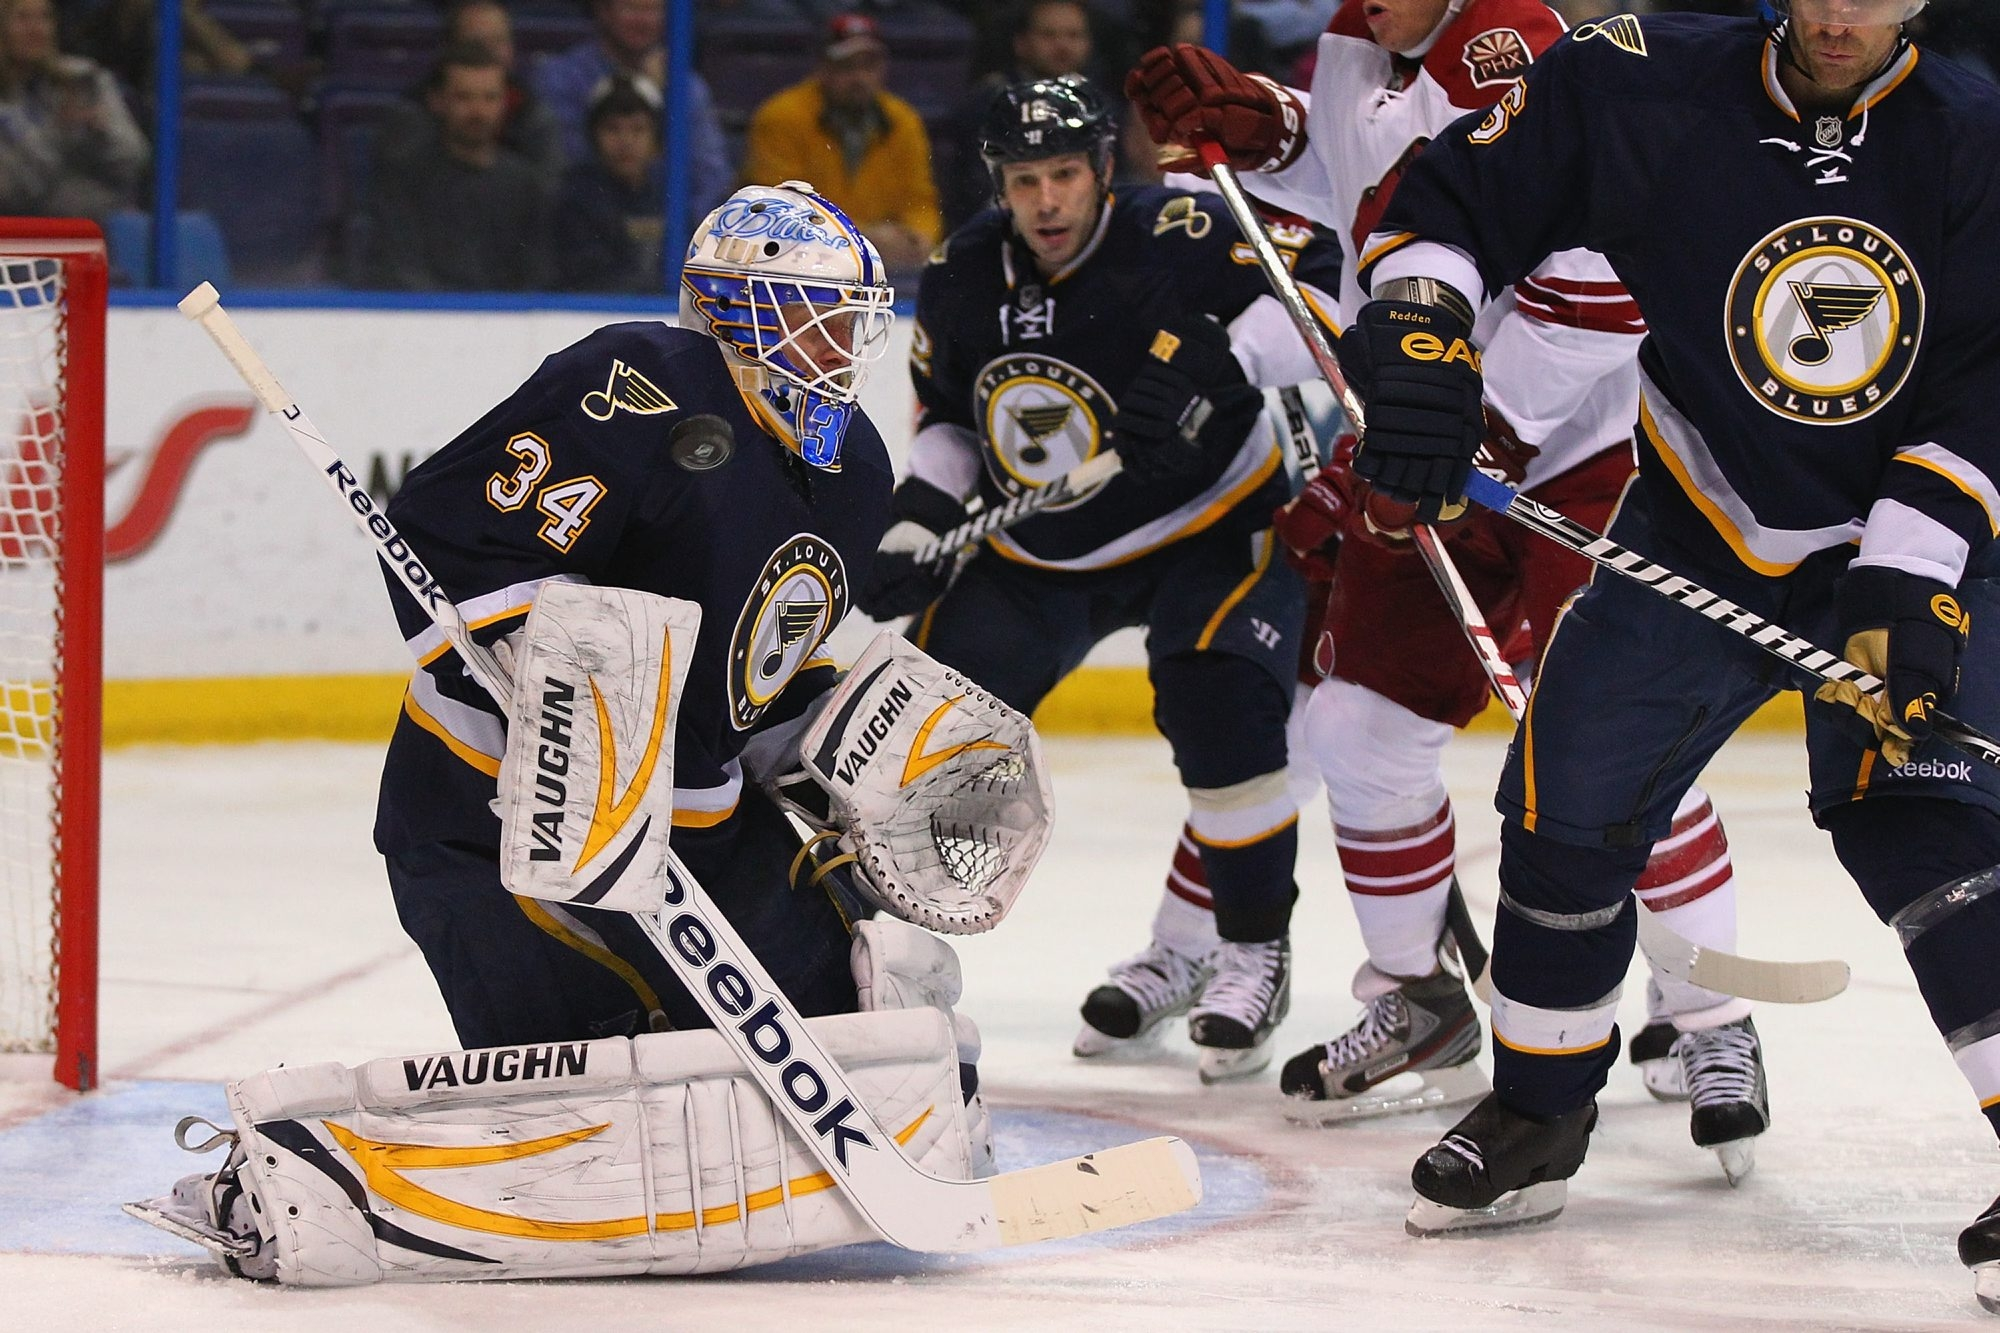 Jake Allen of the AHL Chicago Wolves is waiting his opportunity to be the St. Louis Blues' goalie of the future.